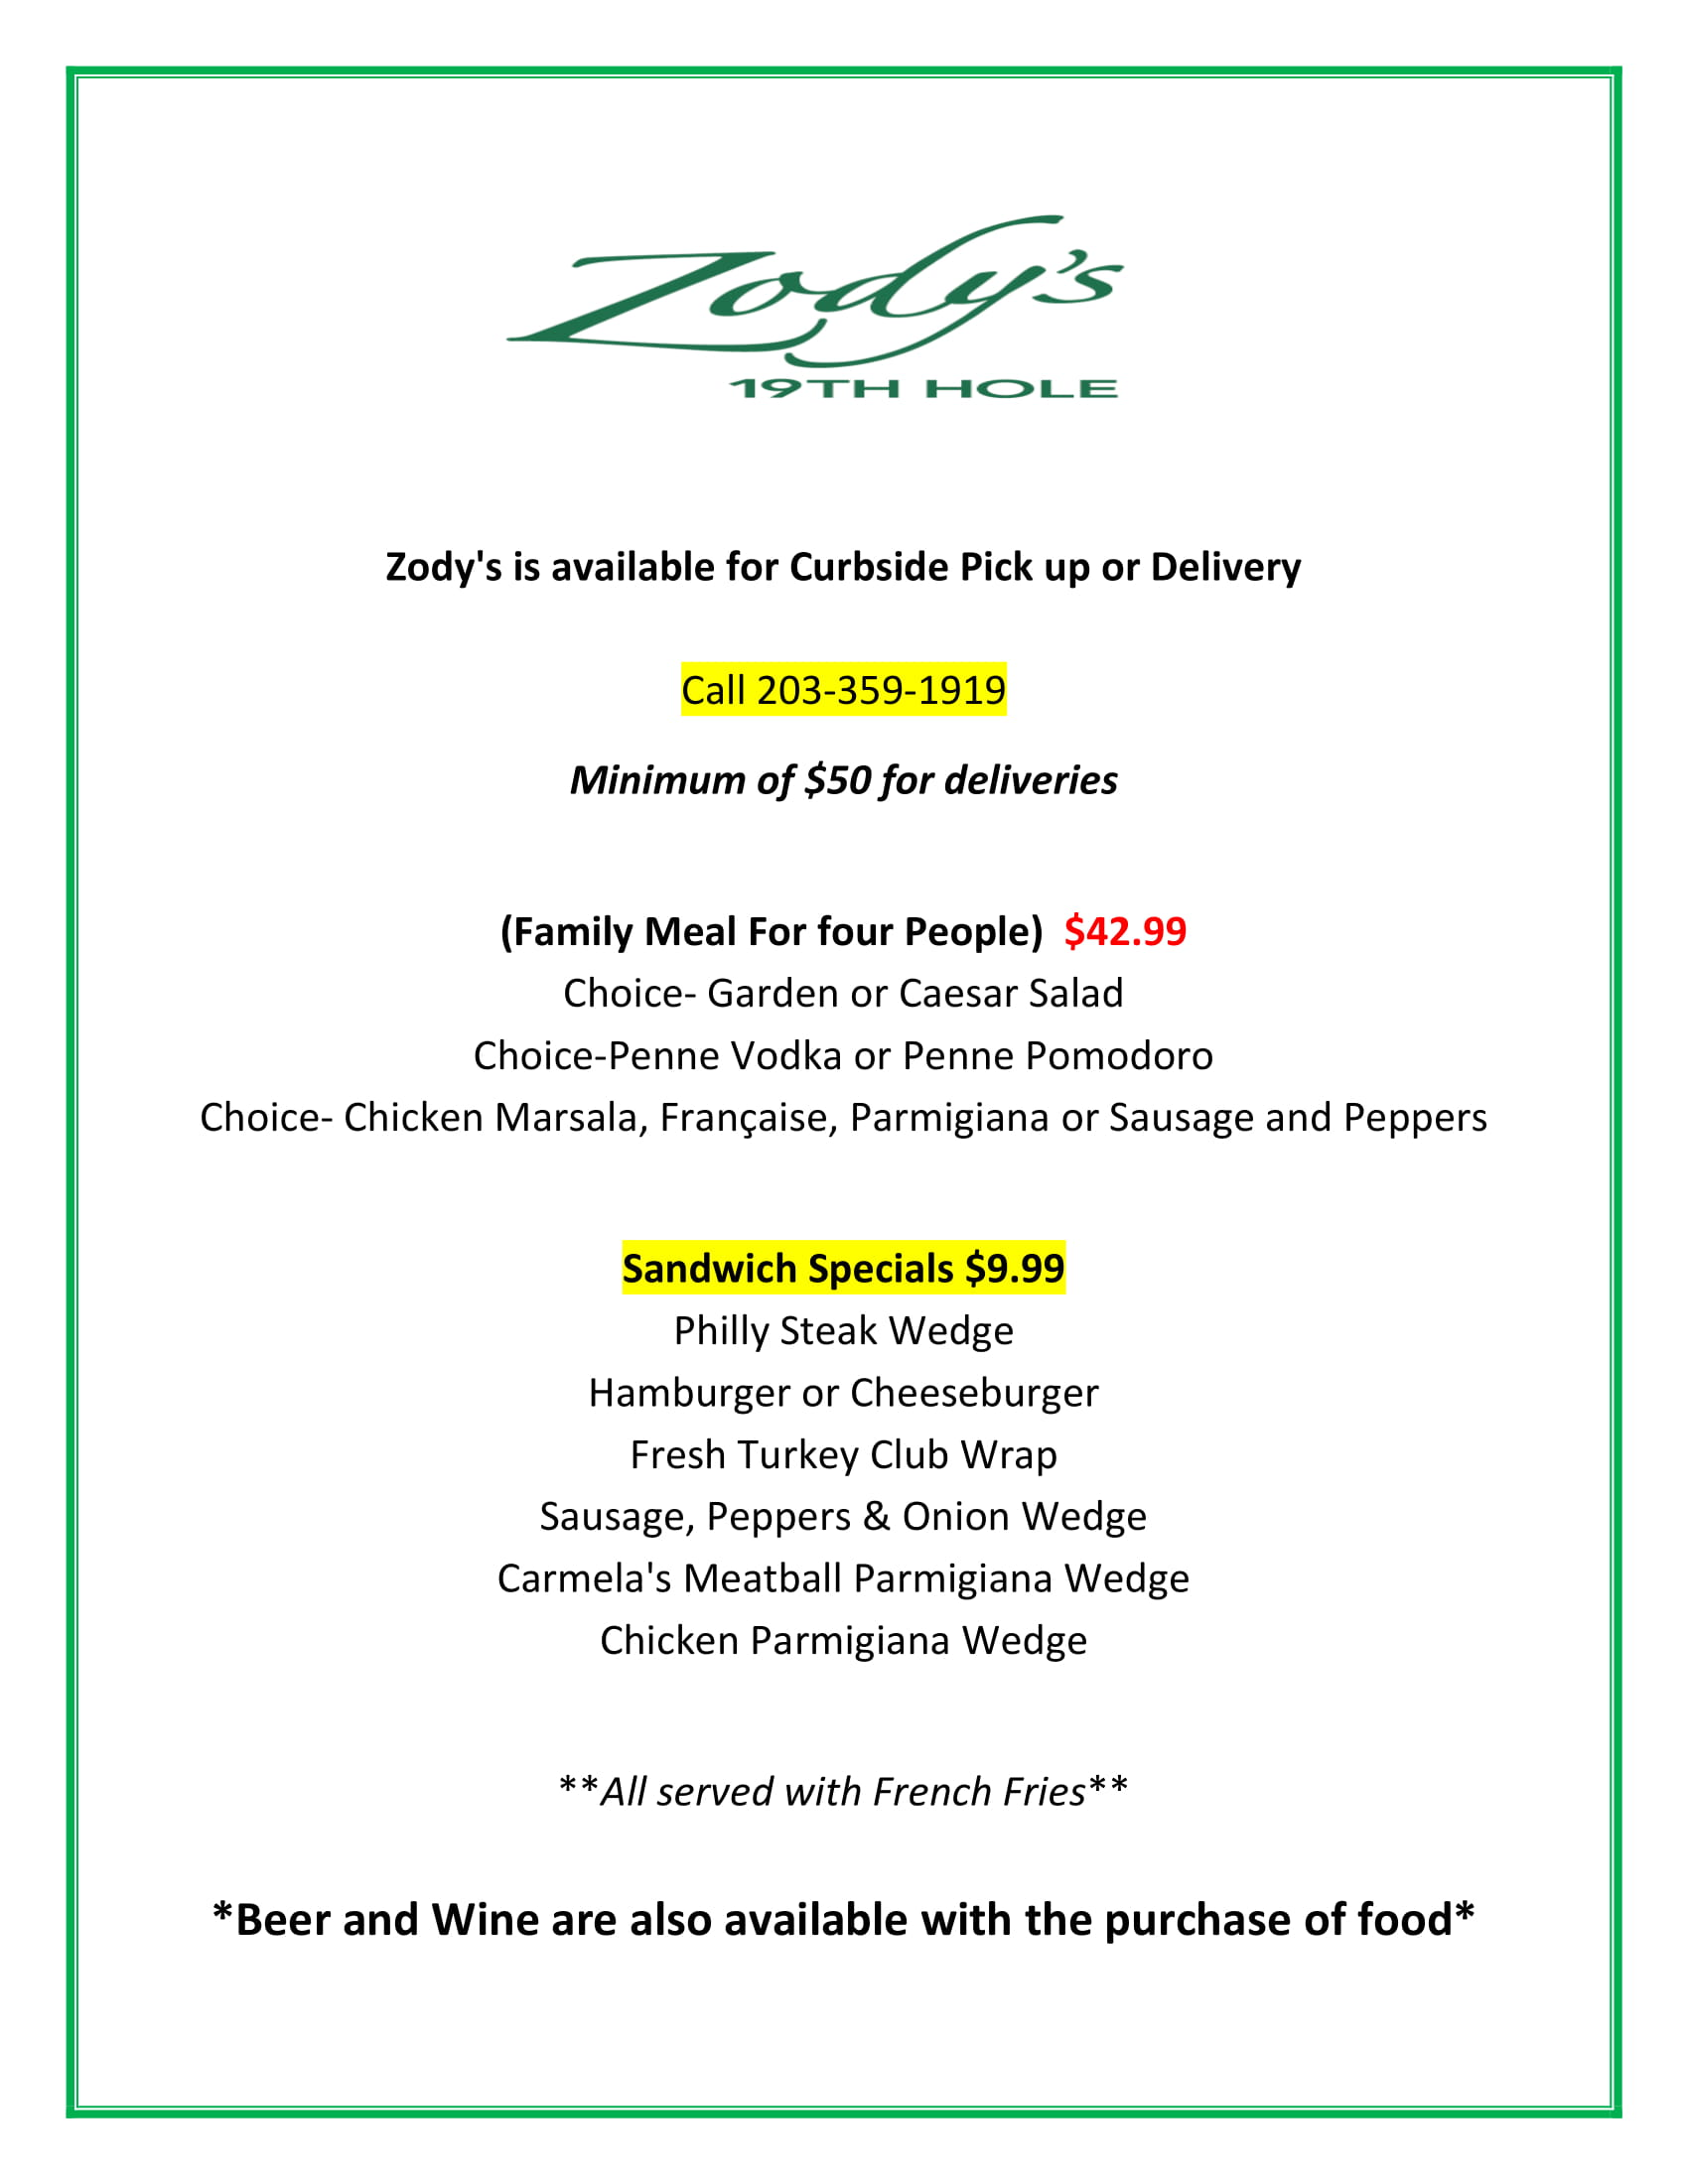 Zody's is available for Curbside Pick up or Delivery    Call 203-359-1919  Minimum of $50 for deliveries    (Family Meal For four People)  $42.99 Choice- Garden or Caesar Salad Choice-Penne Vodka or Penne Pomodoro Choice- Chicken Marsala, Française, Parmigiana or Sausage and Peppers    Sandwich Specials $9.99 Philly Steak Wedge Hamburger or Cheeseburger Fresh Turkey Club Wrap Sausage, Peppers & Onion Wedge Carmela's Meatball Parmigiana Wedge  Chicken Parmigiana Wedge    **All served with French Fries**    *Beer and Wine are also available with the purchase of food*